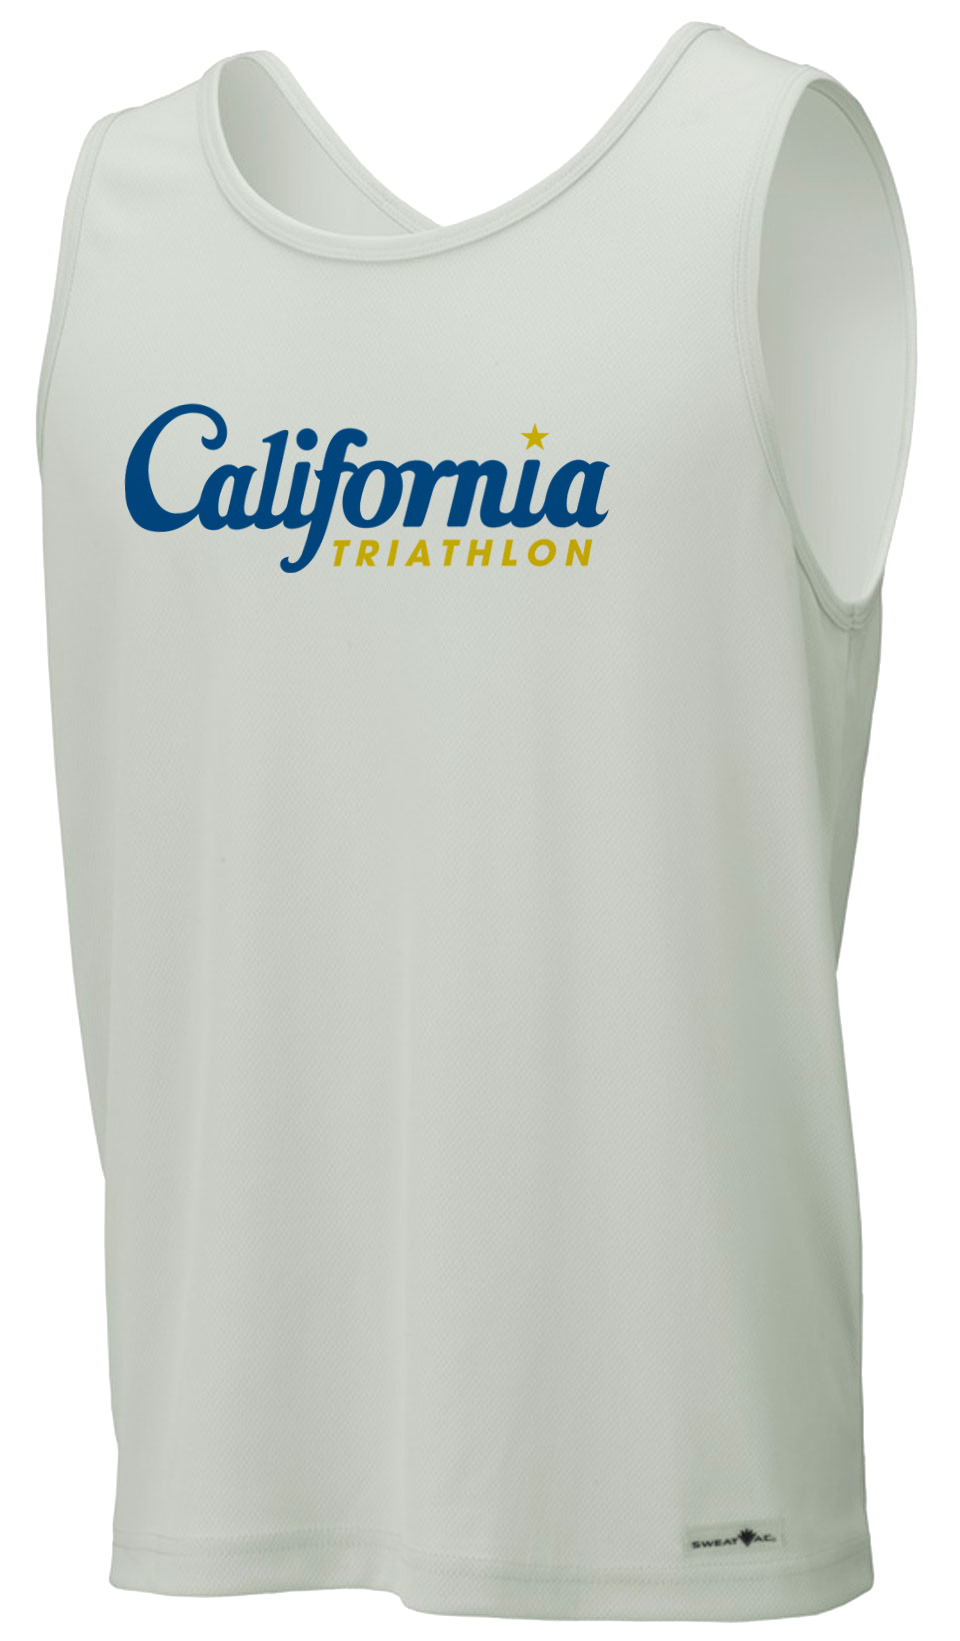 California Triathlon Unisex Race Tank Image